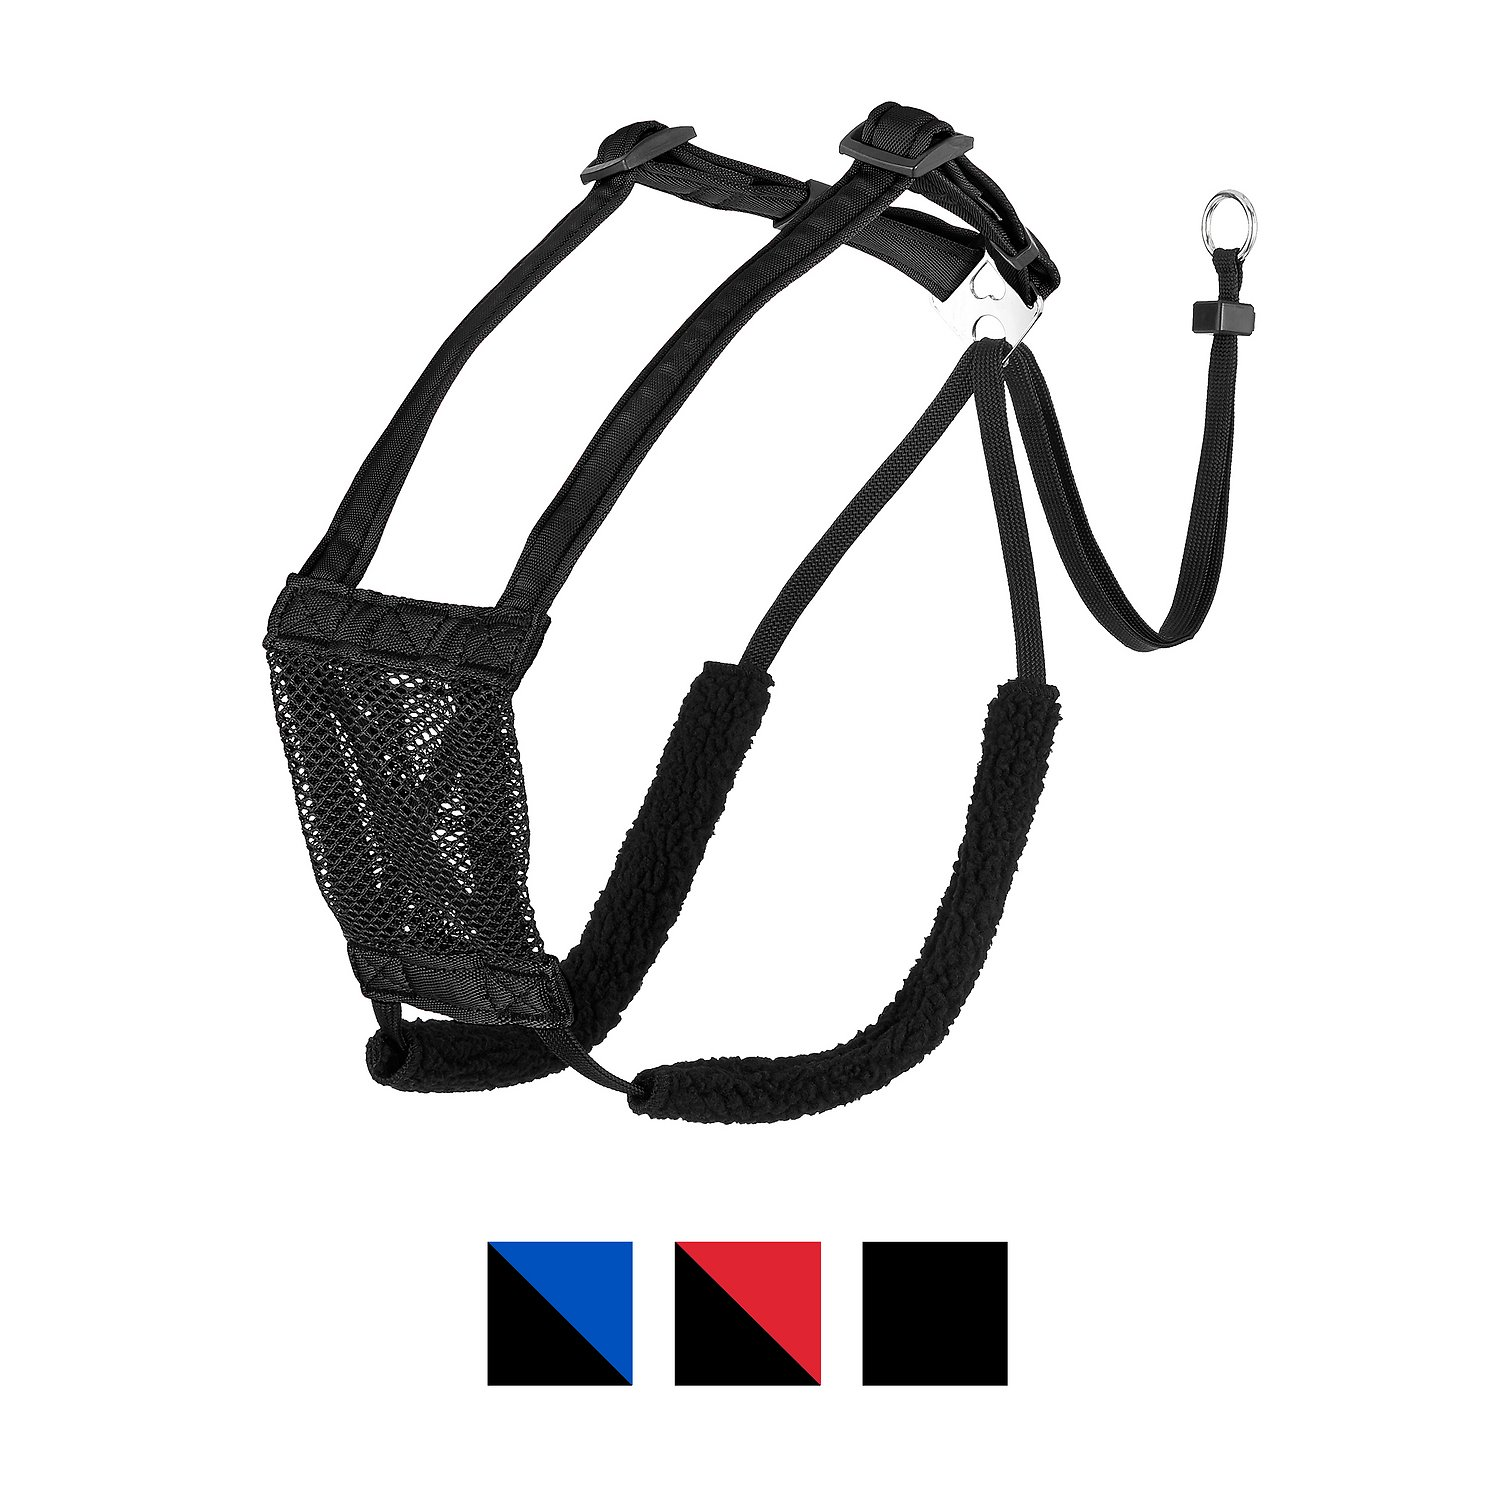 Sporn Non Pull Mesh Dog Harness Black Large X Large